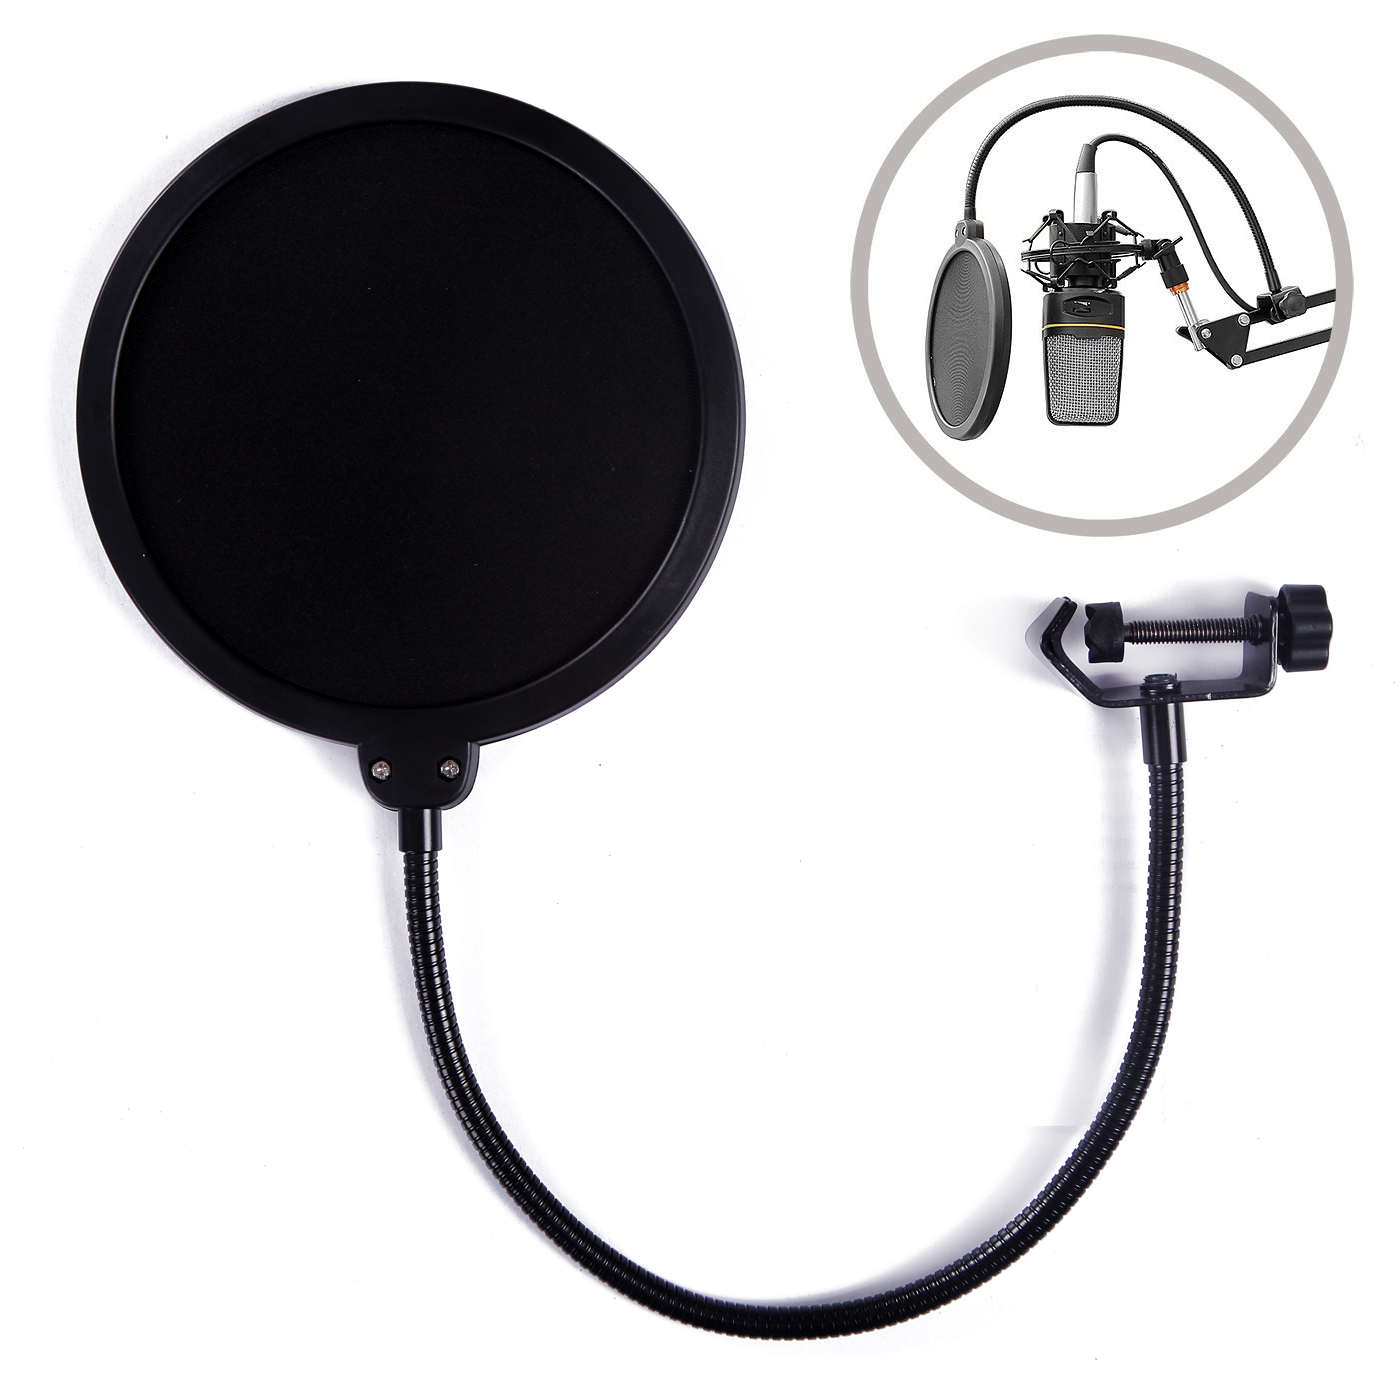 HDE 6 Inch Pop Filter Shield for Blue Yeti Microphones and USB Condenser Mics